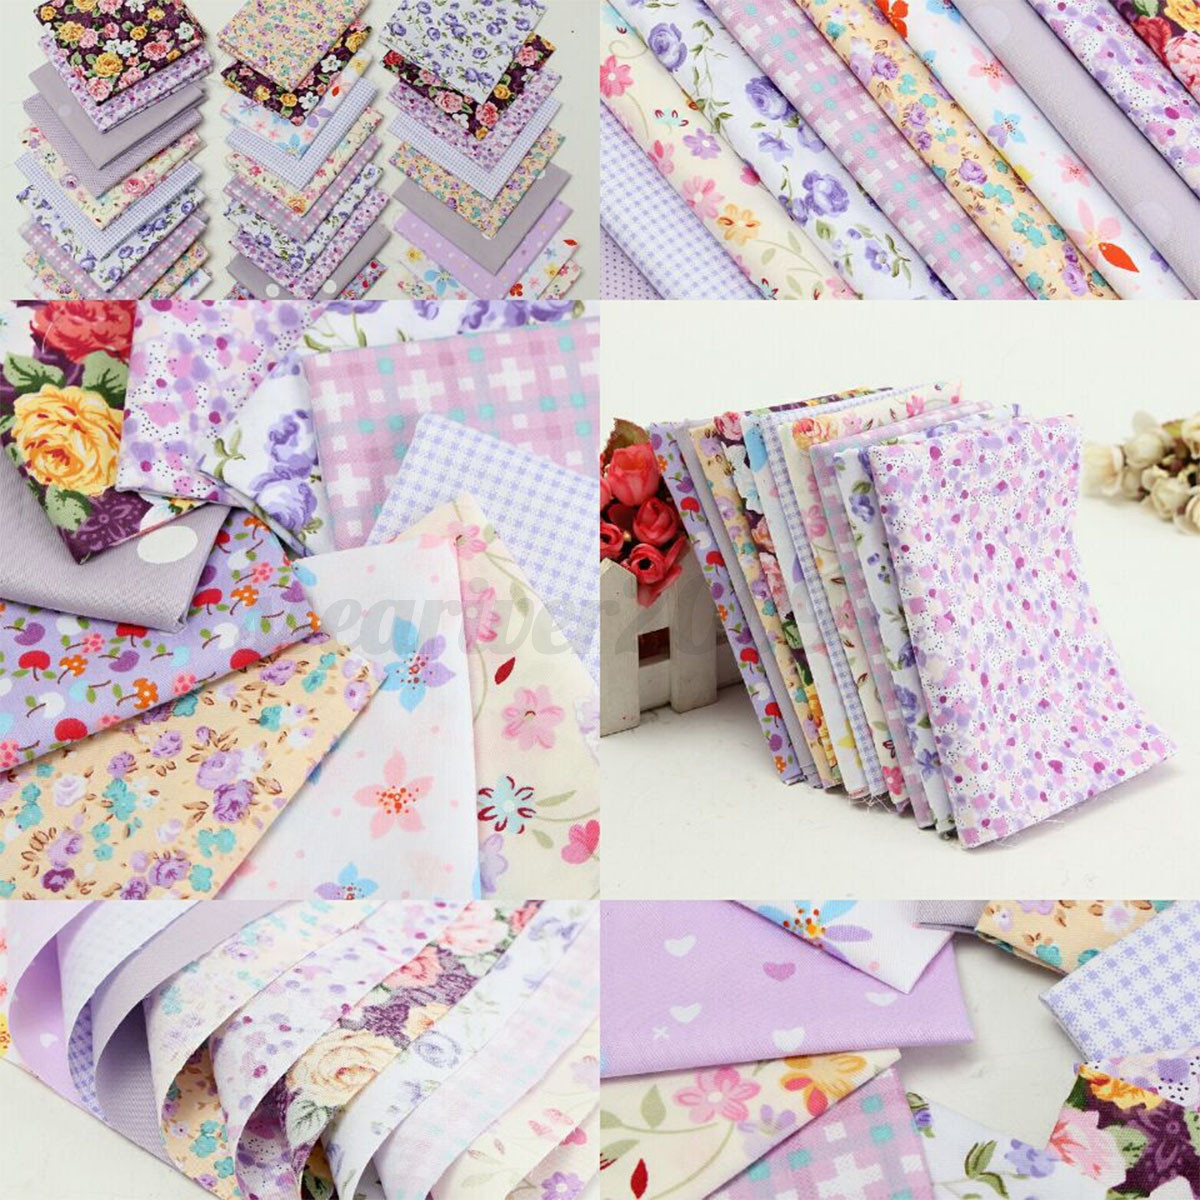 10pcs Colorful Floral Fabric Cotton Cloth Diy Sewing Quilt Tablecloth Home Decor Ebay